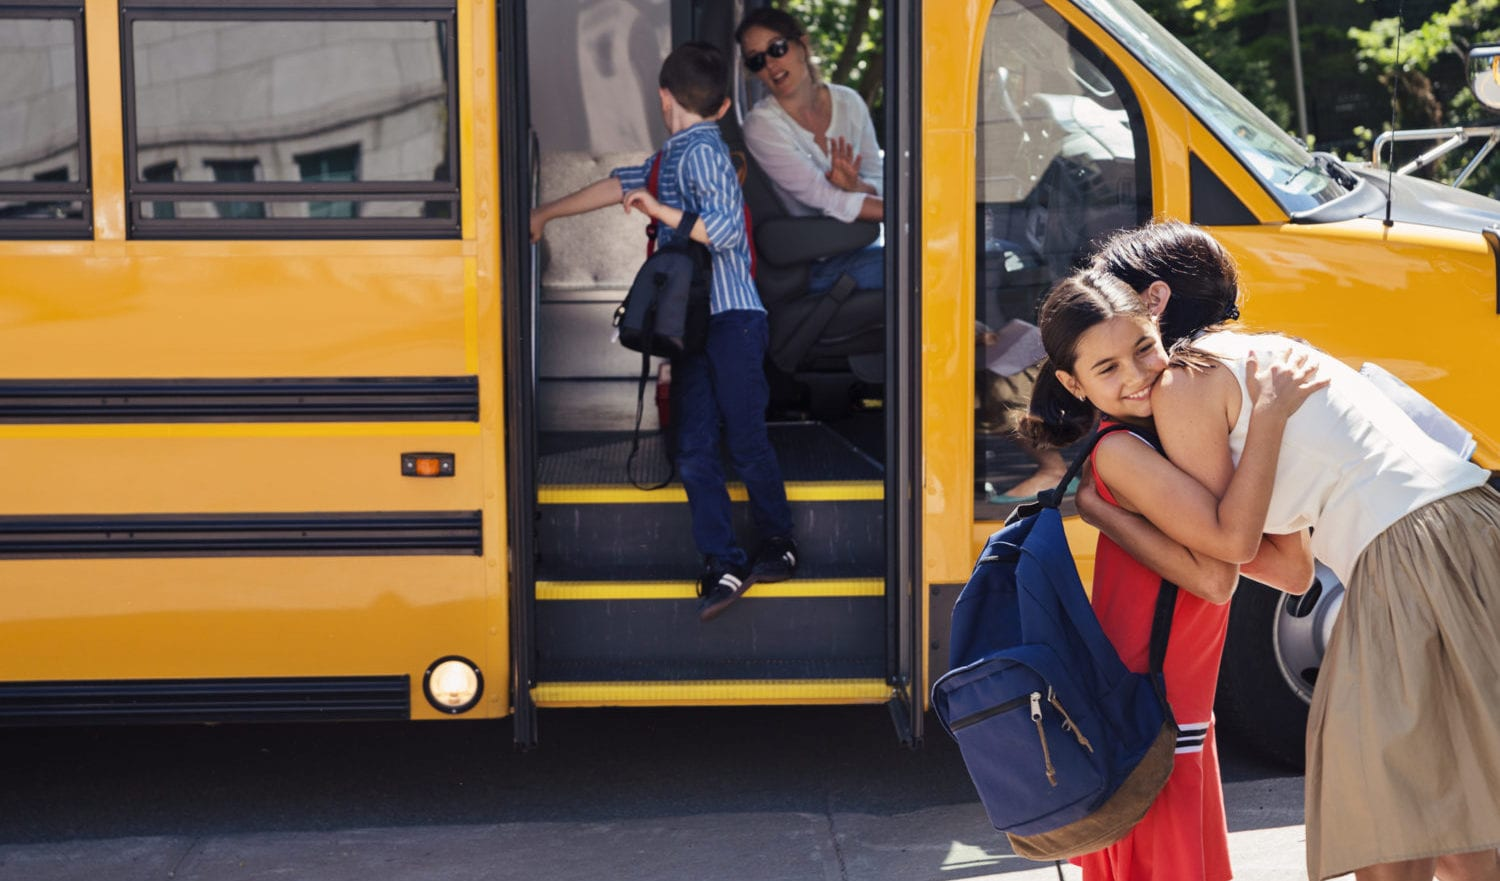 Mother greeting elementary age girl getting off yellow school bus. Little boy saying goodbye to the driver in the background. Woman is driving the bus. Horizontal outdoors shot with copy space. This was taken in Quebec, Canada.